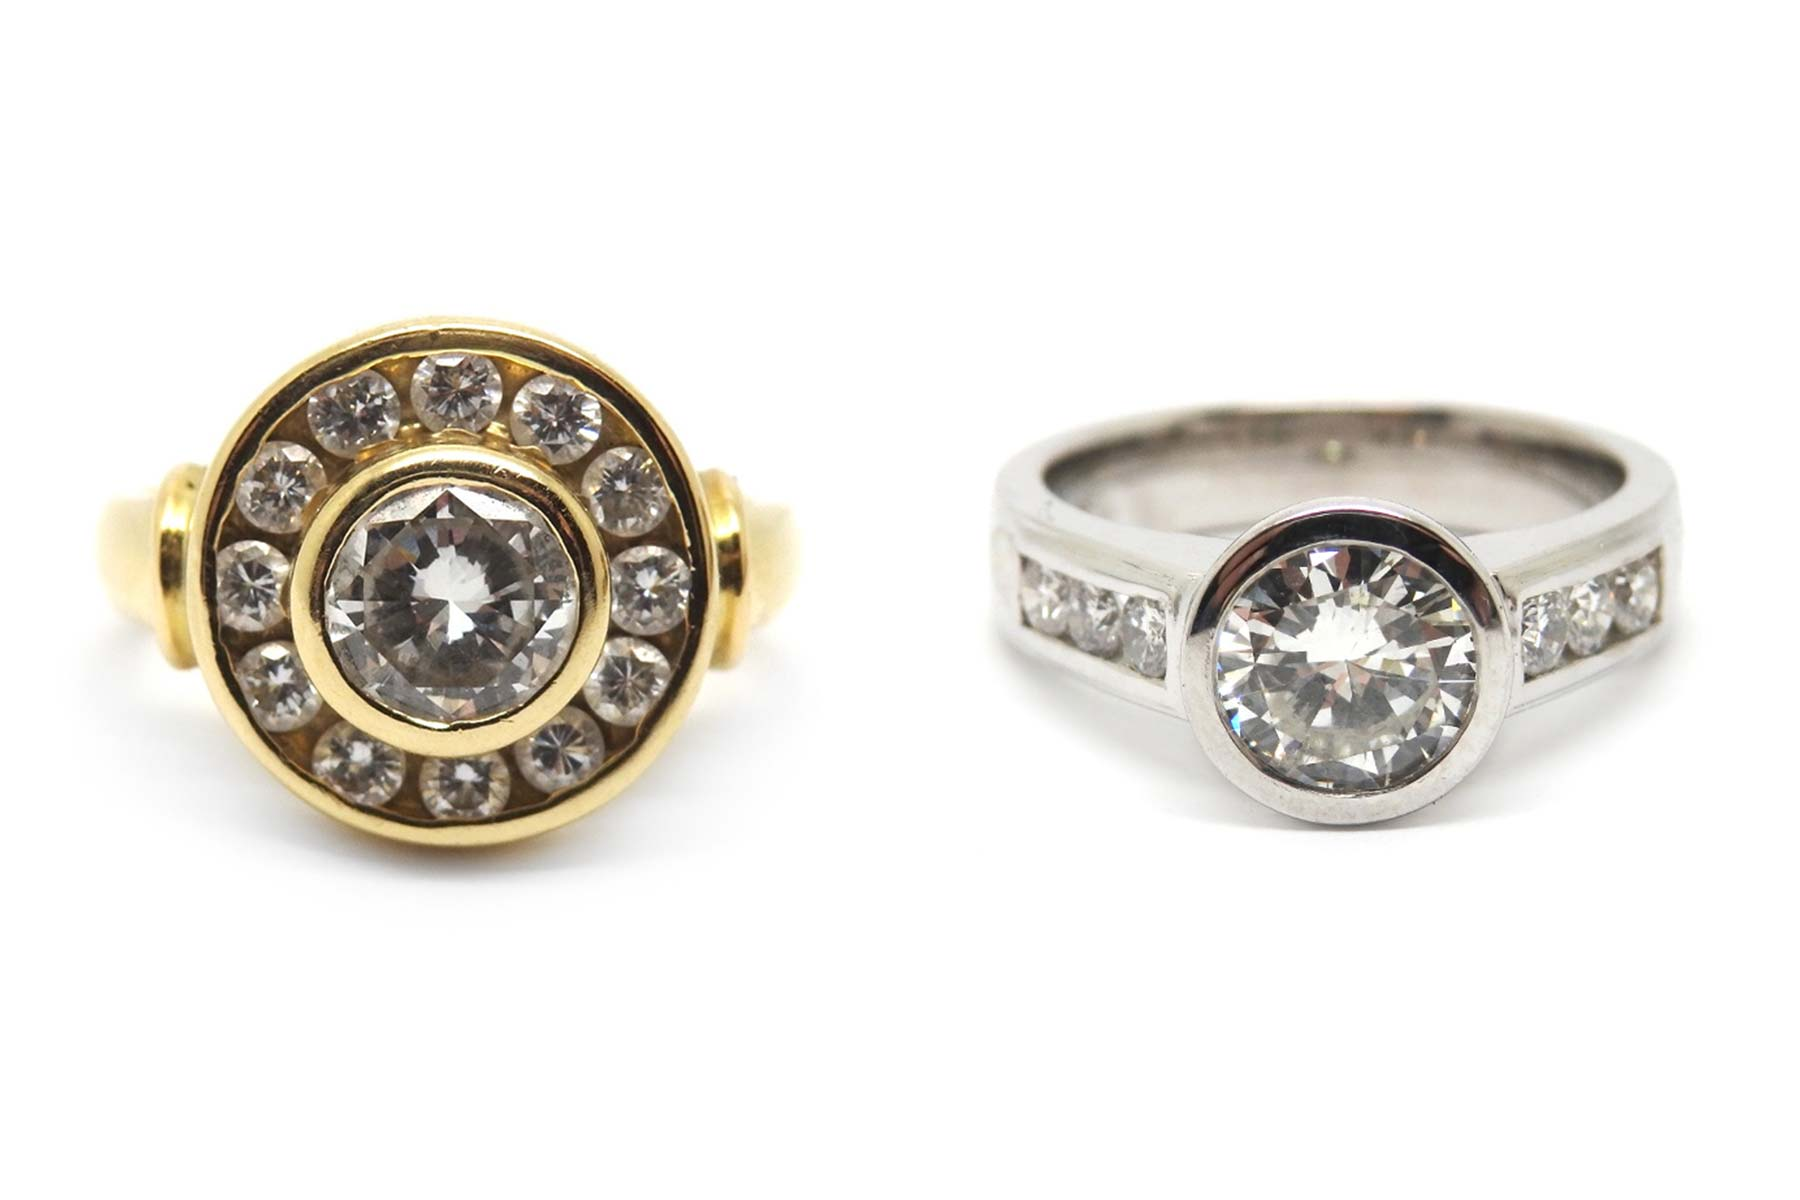 Creating an engagement ring for an inherited piece. Redesigning to create a timeless ring that reflects the new owner